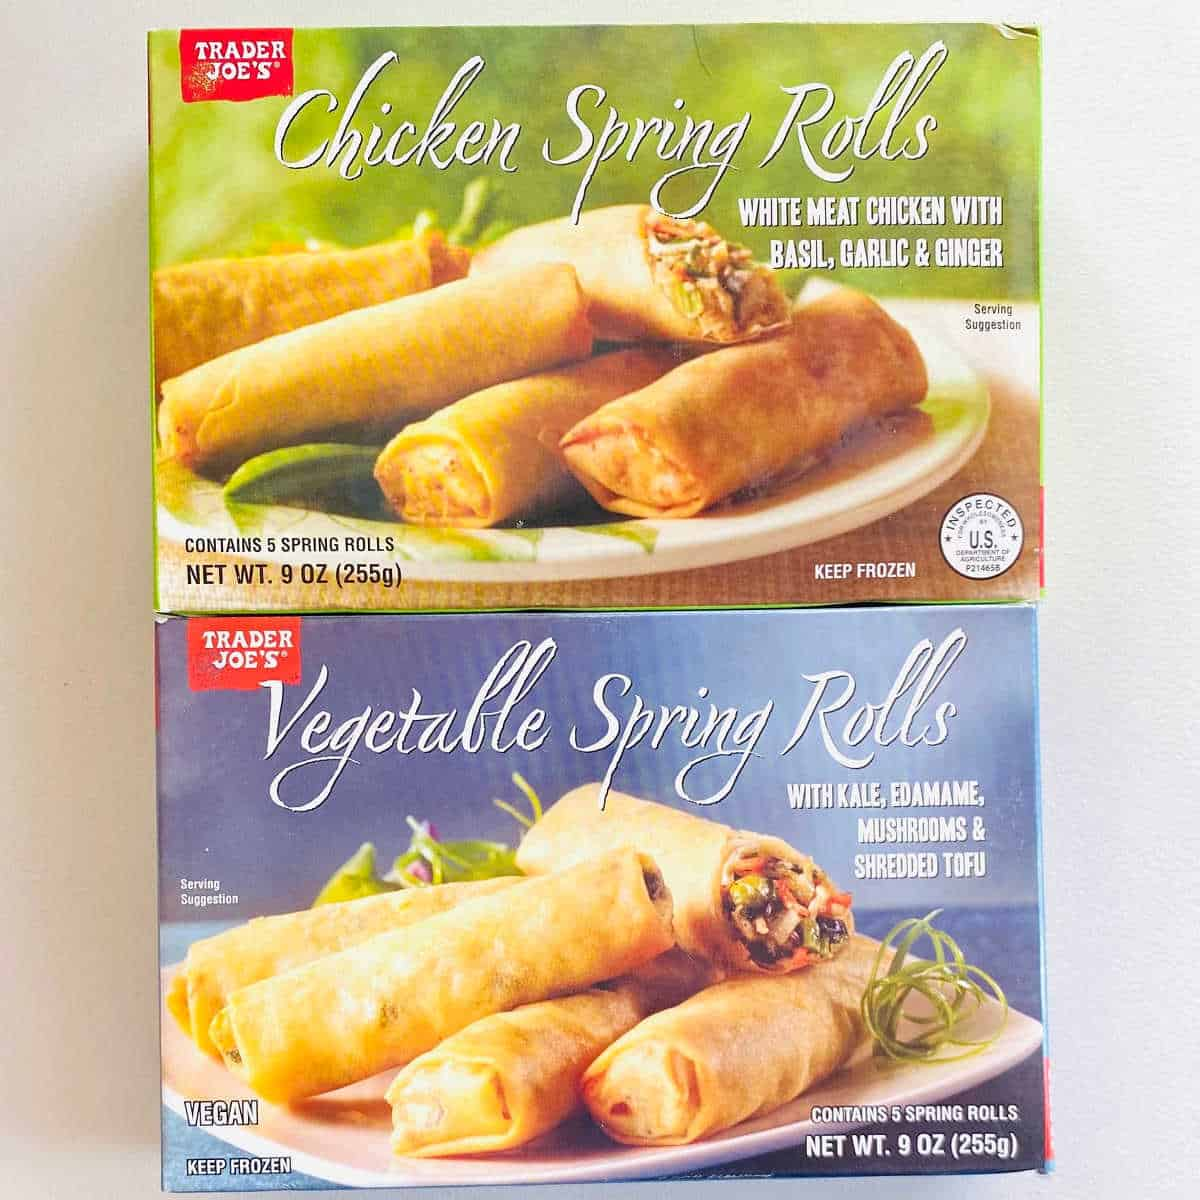 trader joes frozen spring rolls boxes of vegetable spring rolls and chicken spring rolls